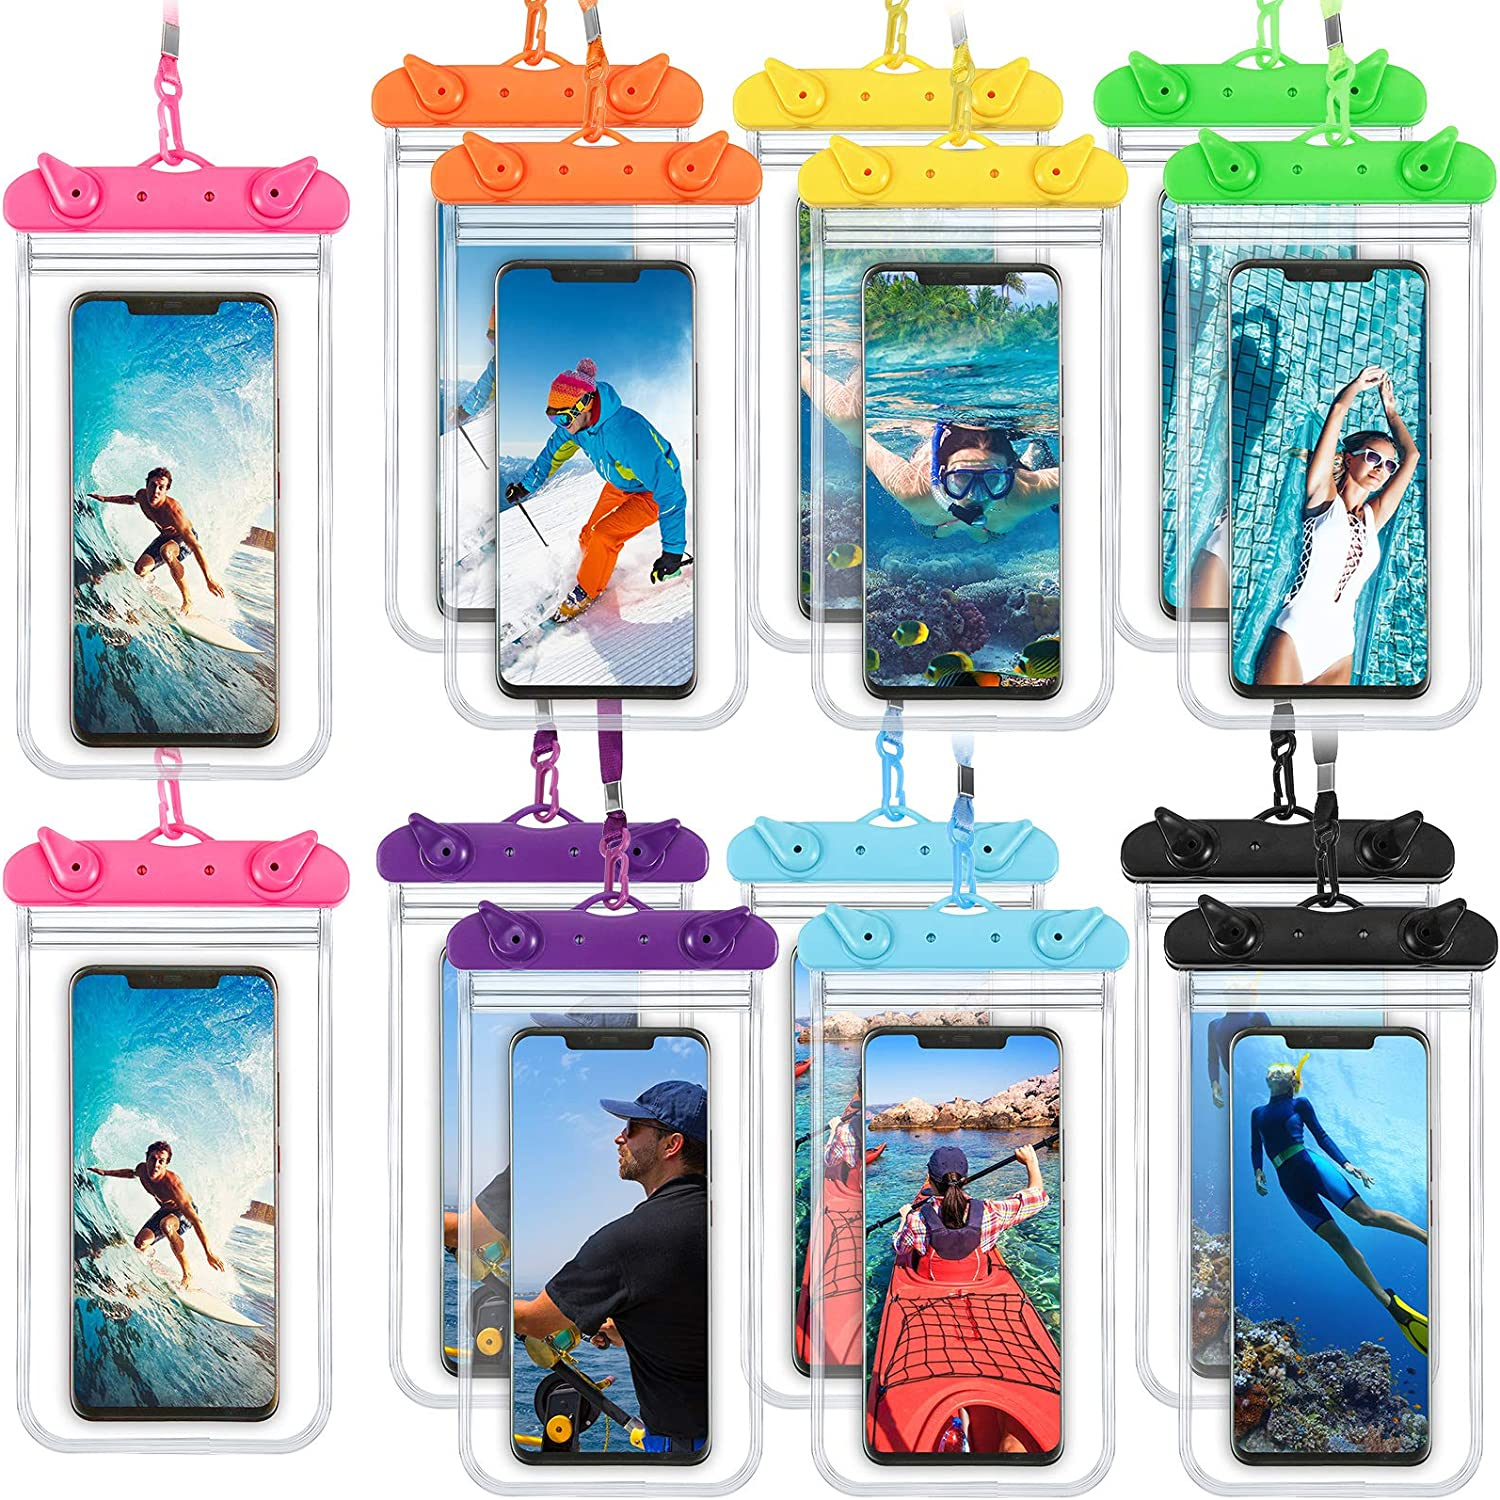 14 Pieces Waterproof Phone Pouch Universal Underwater Case Clear Cellphone Dry Bag with Lanyard Outdoor Beach Swimming Snorkeling Bag for Smartphone up to 6.9 Inch, 7 Colors